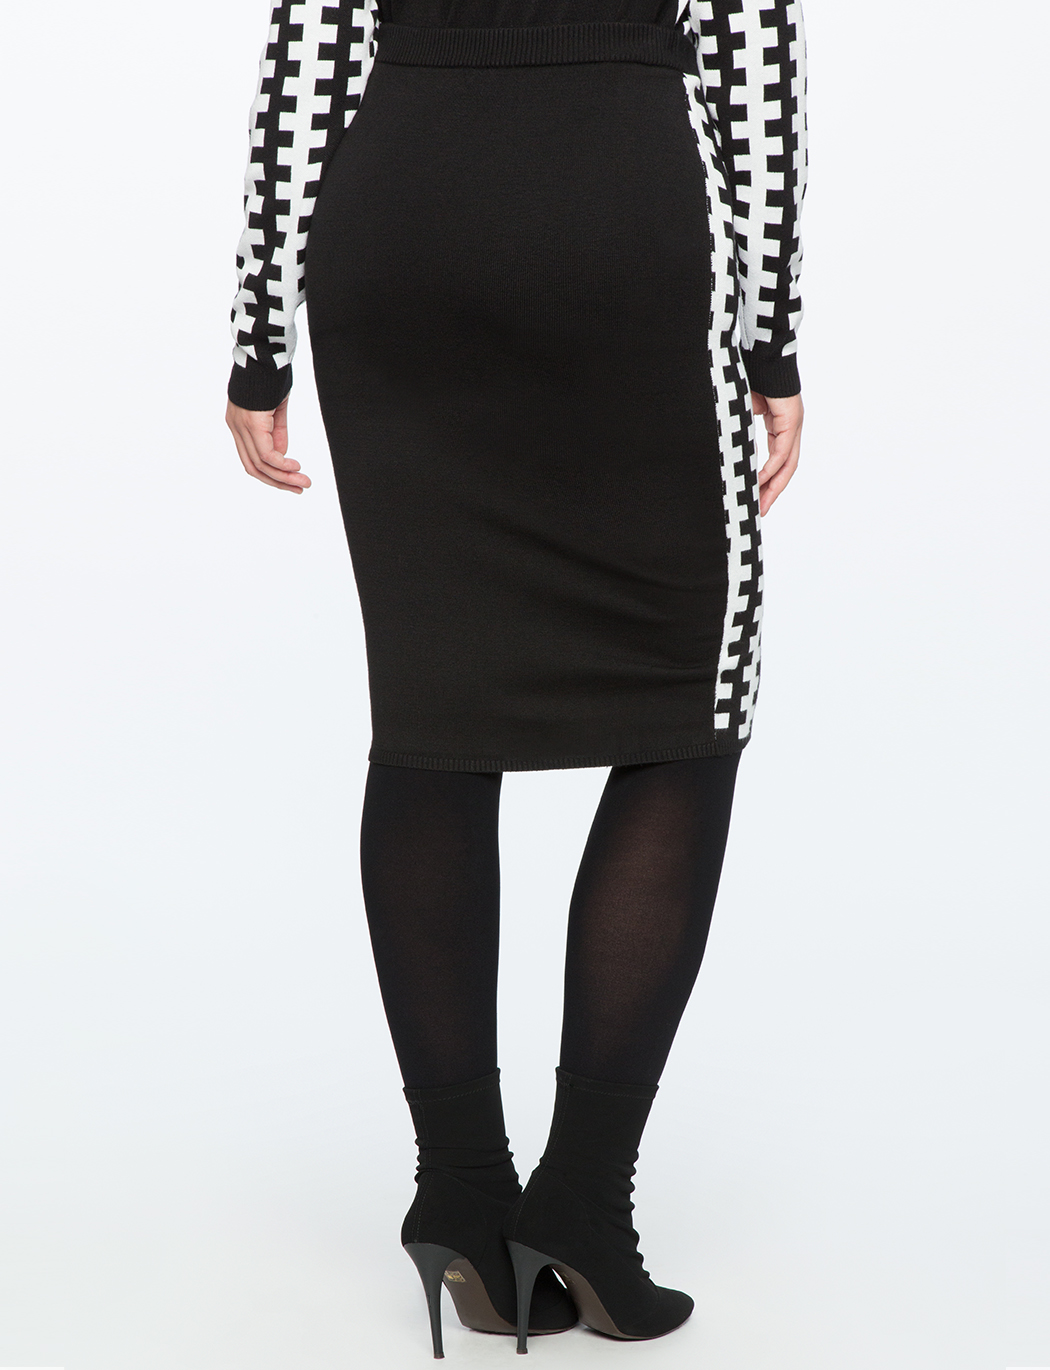 Intarsia Pencil Skirt